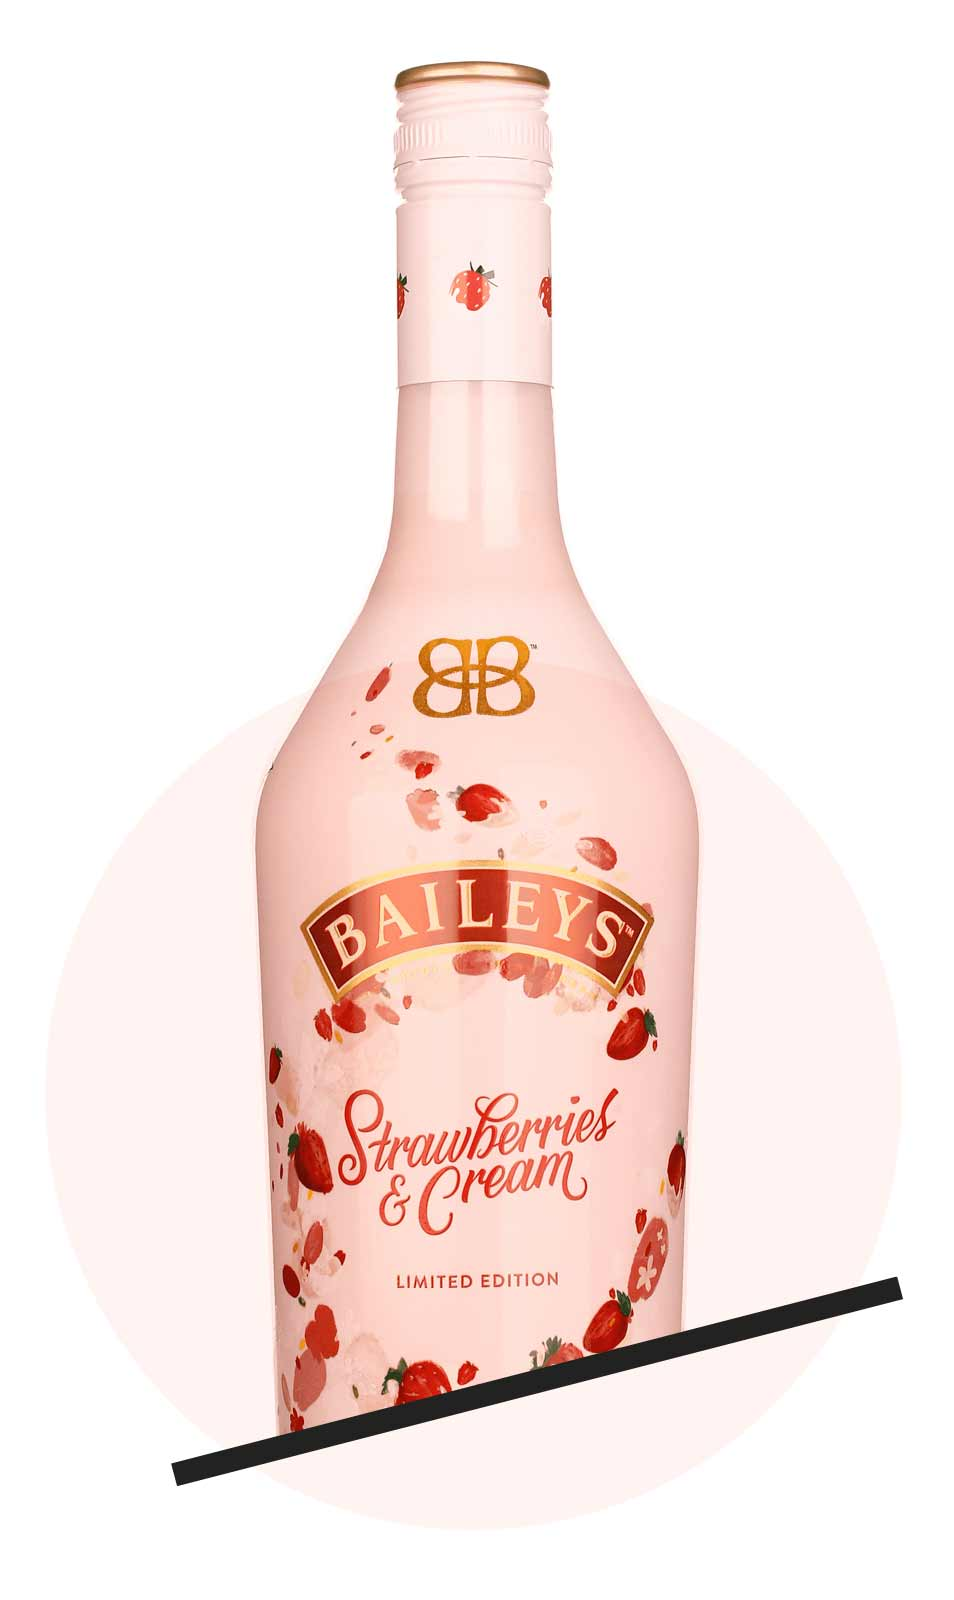 Baileys Strawberry & Cream | Verkostungsrunde Spirituosen April 2019 | Mixology Magazin für Barkultur